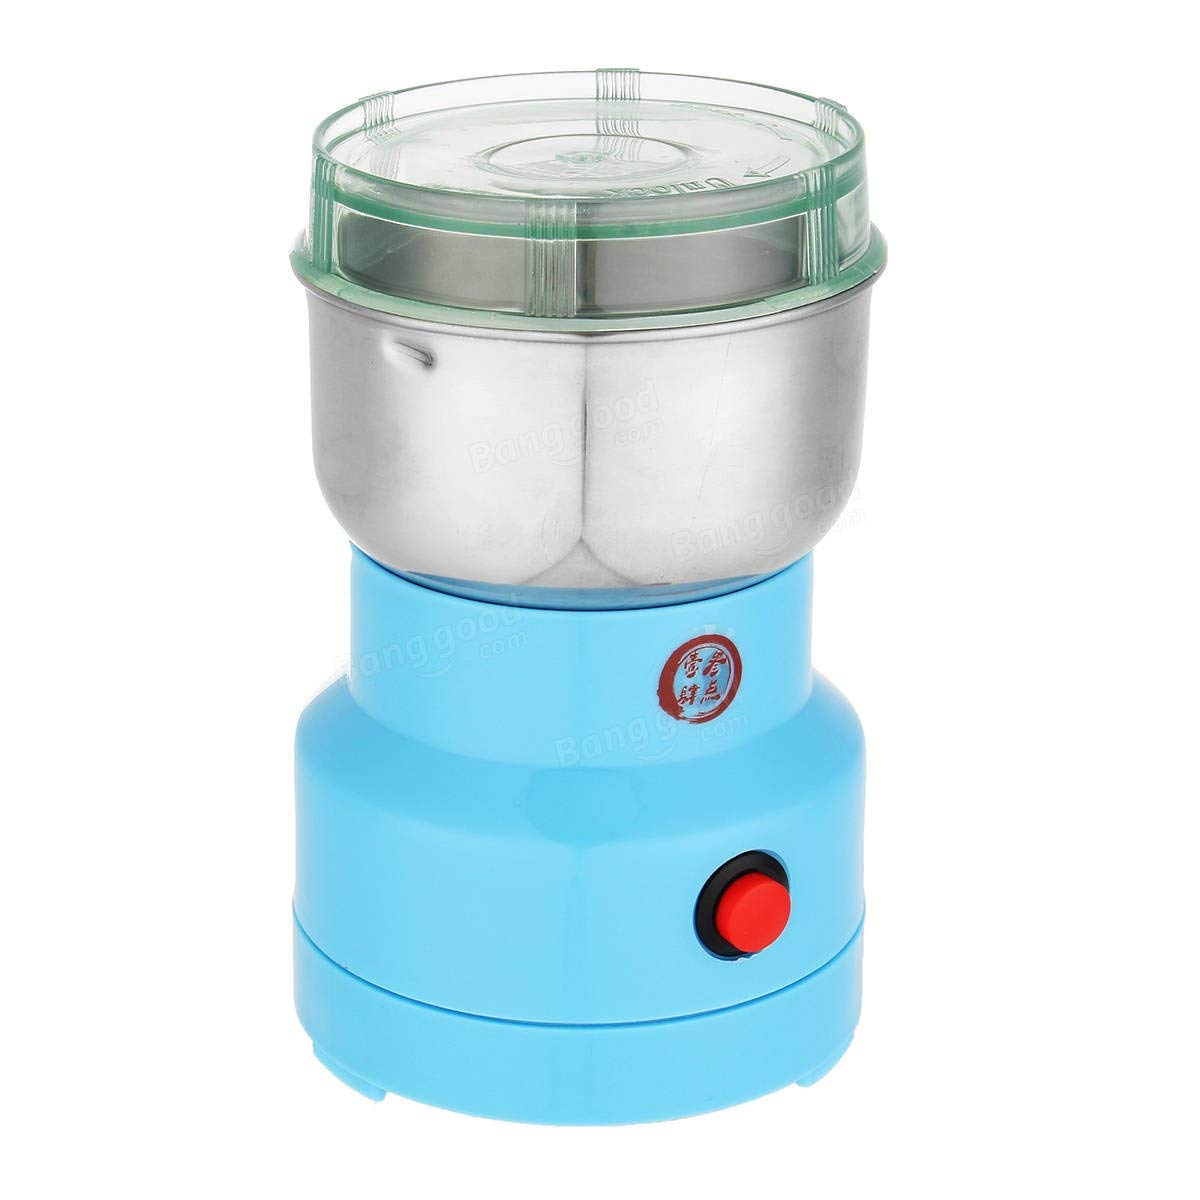 220V Electric Herbs/Spices/Nuts/Grains/Coffee Bean Grinder Mill Grinding - Tools & Home Improvement Home Appliance Part - 1 x Grain grinder, 1 x Brush